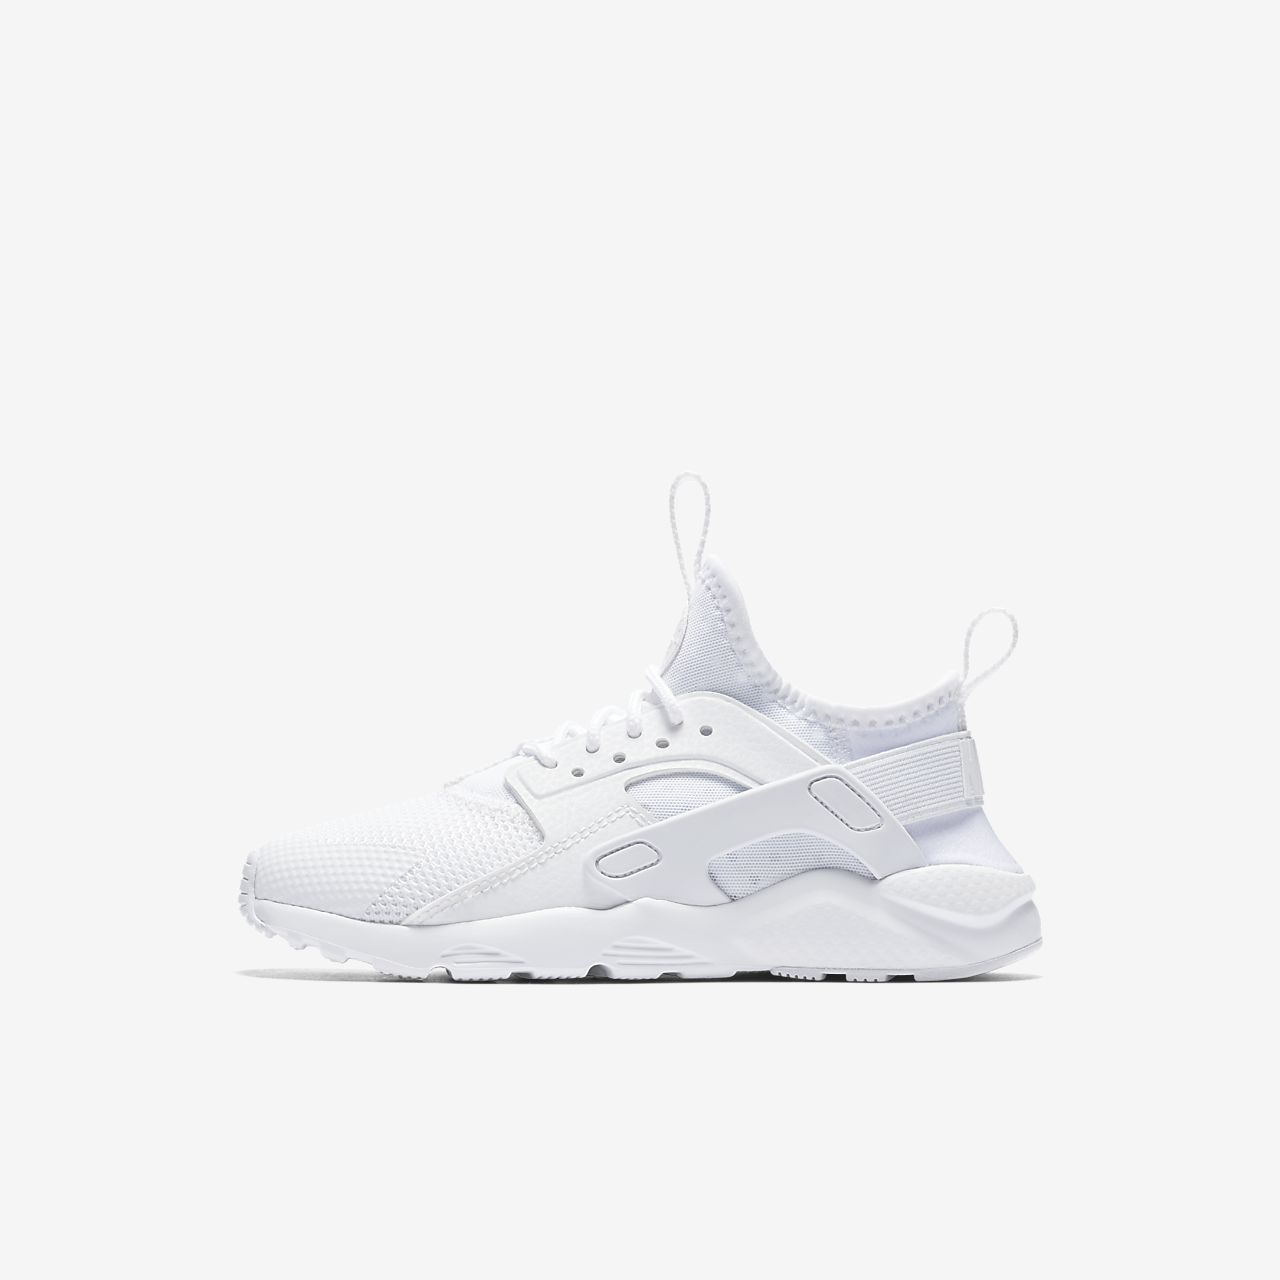 558c0858659 Nike Huarache Ultra Younger Kids  Shoe. Nike.com GB